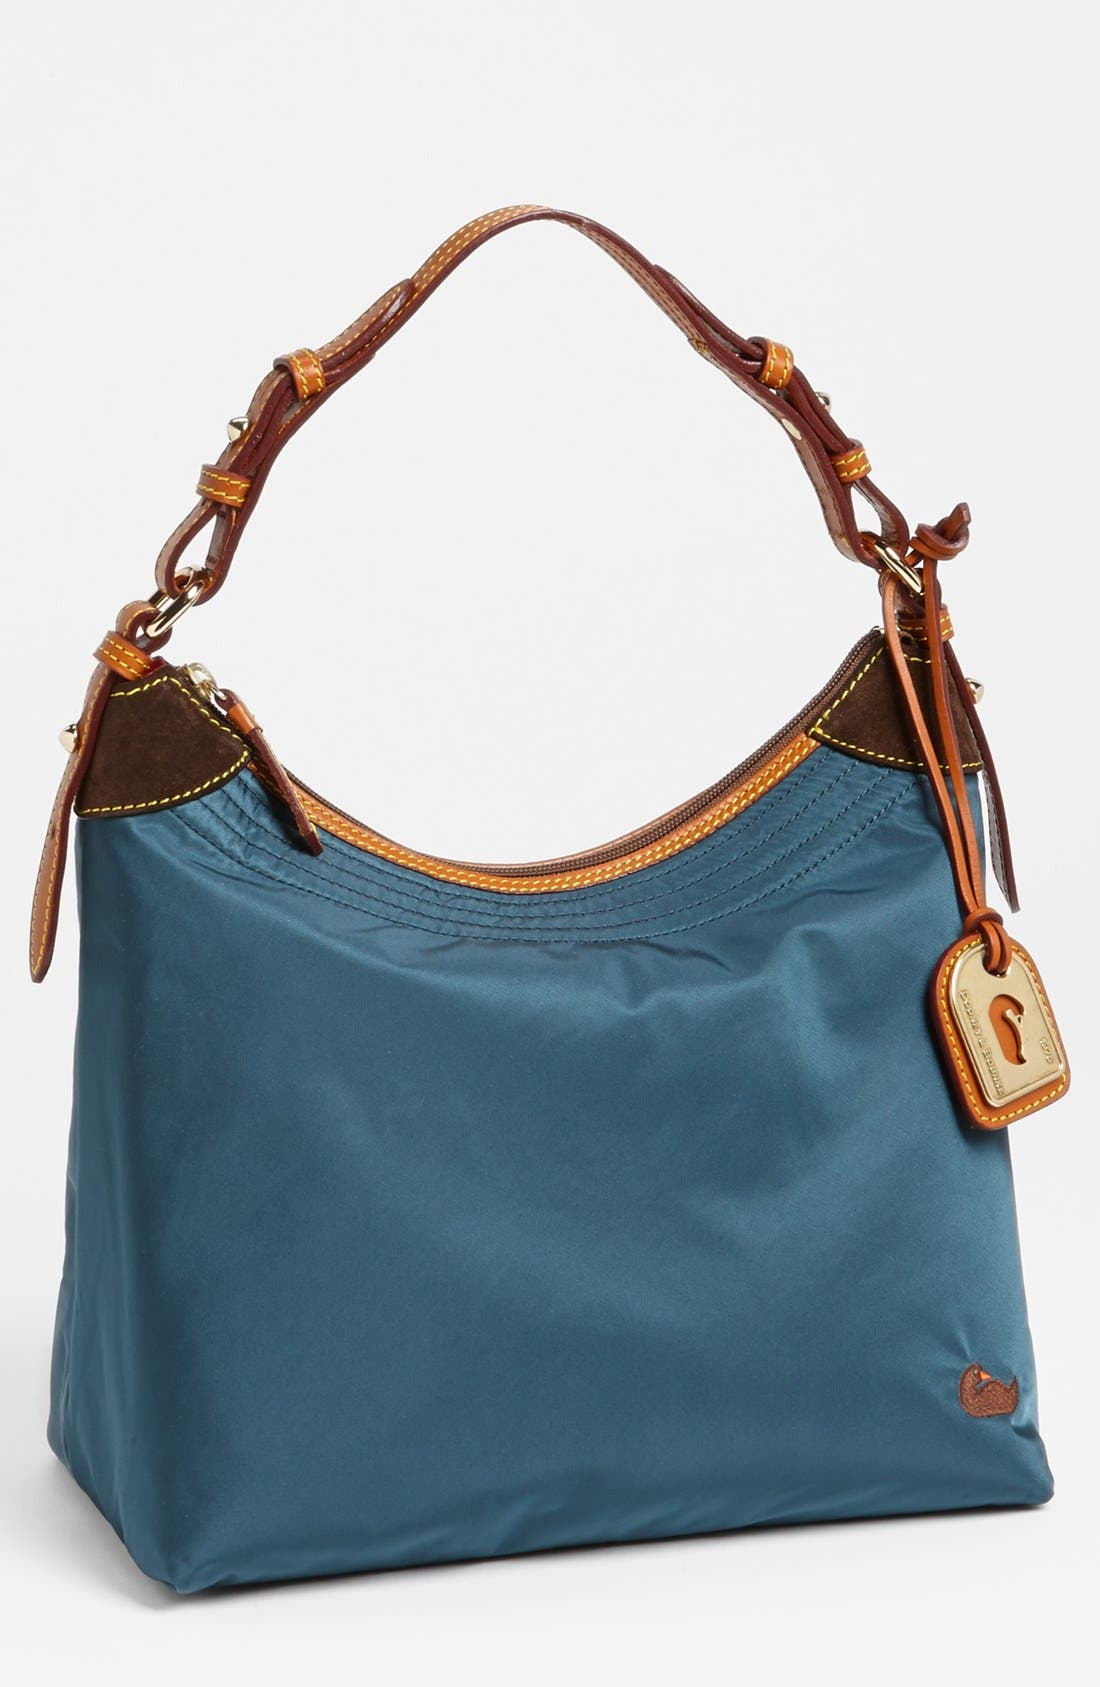 Main Image - Dooney & Bourke 'Erica Sport Sac - Large' Nylon Hobo